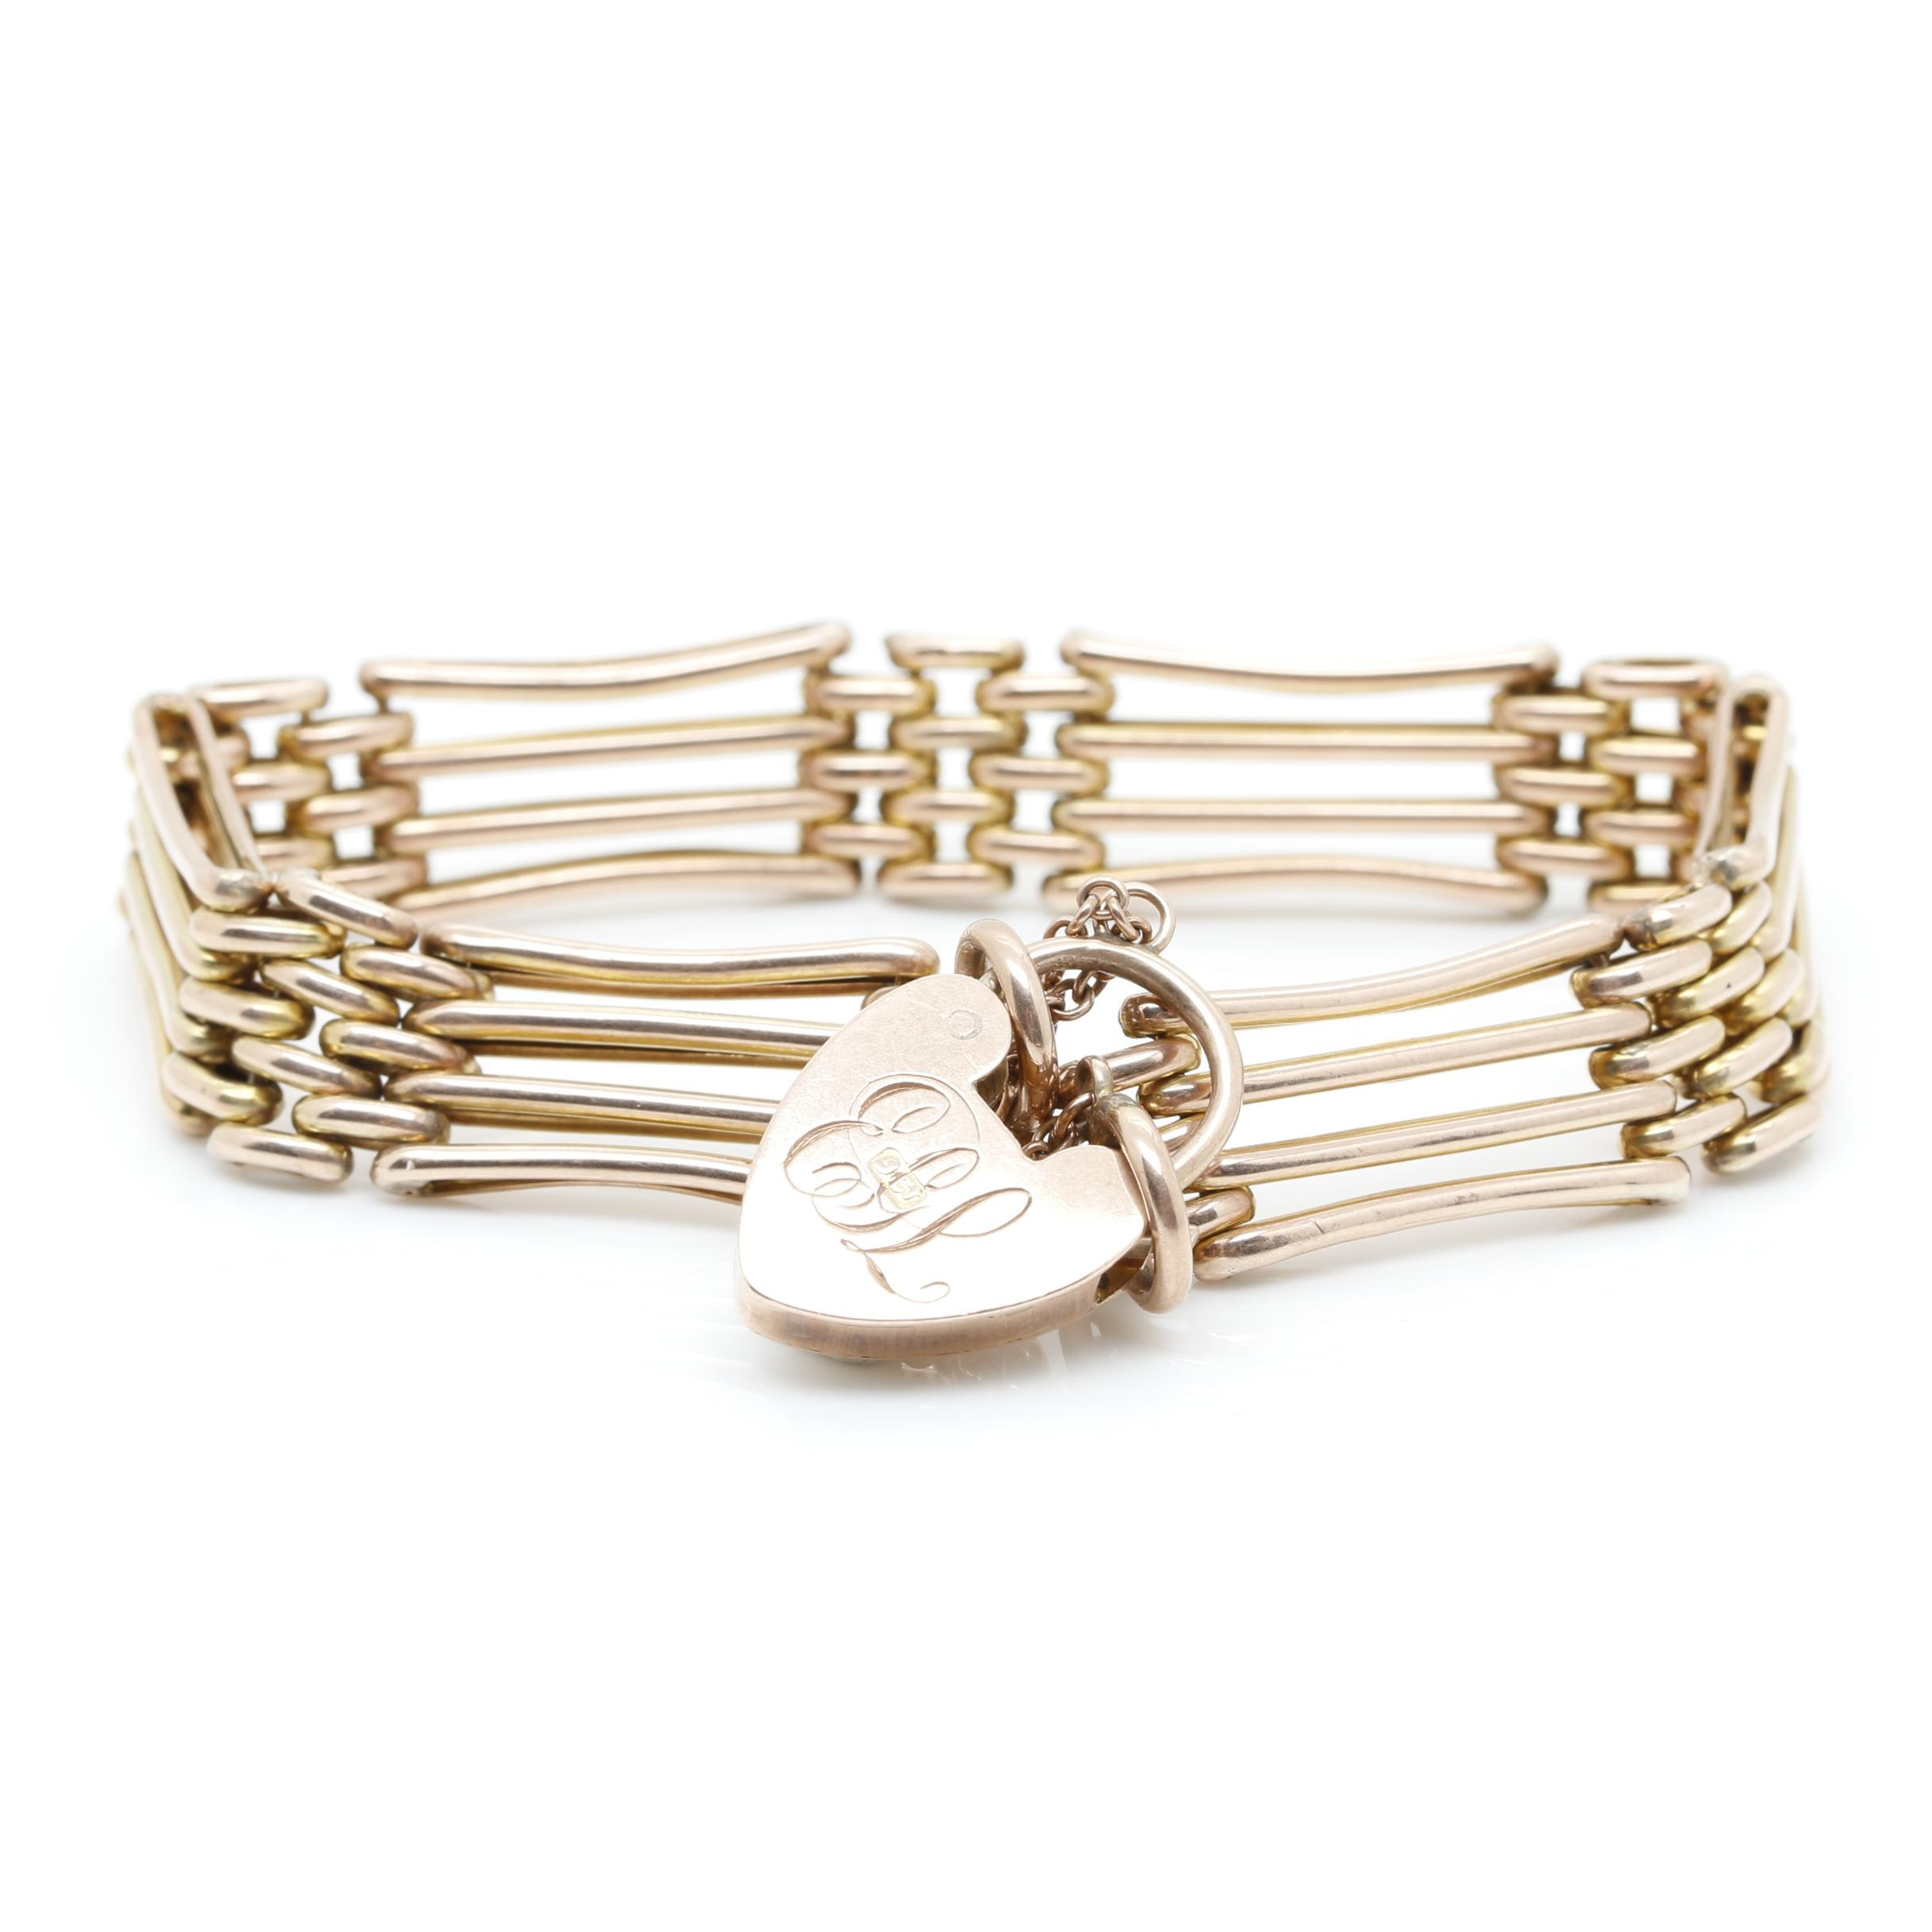 Victorian 10K Yellow Gold Gate Bracelet Bracelet with Engraved Heart Charm